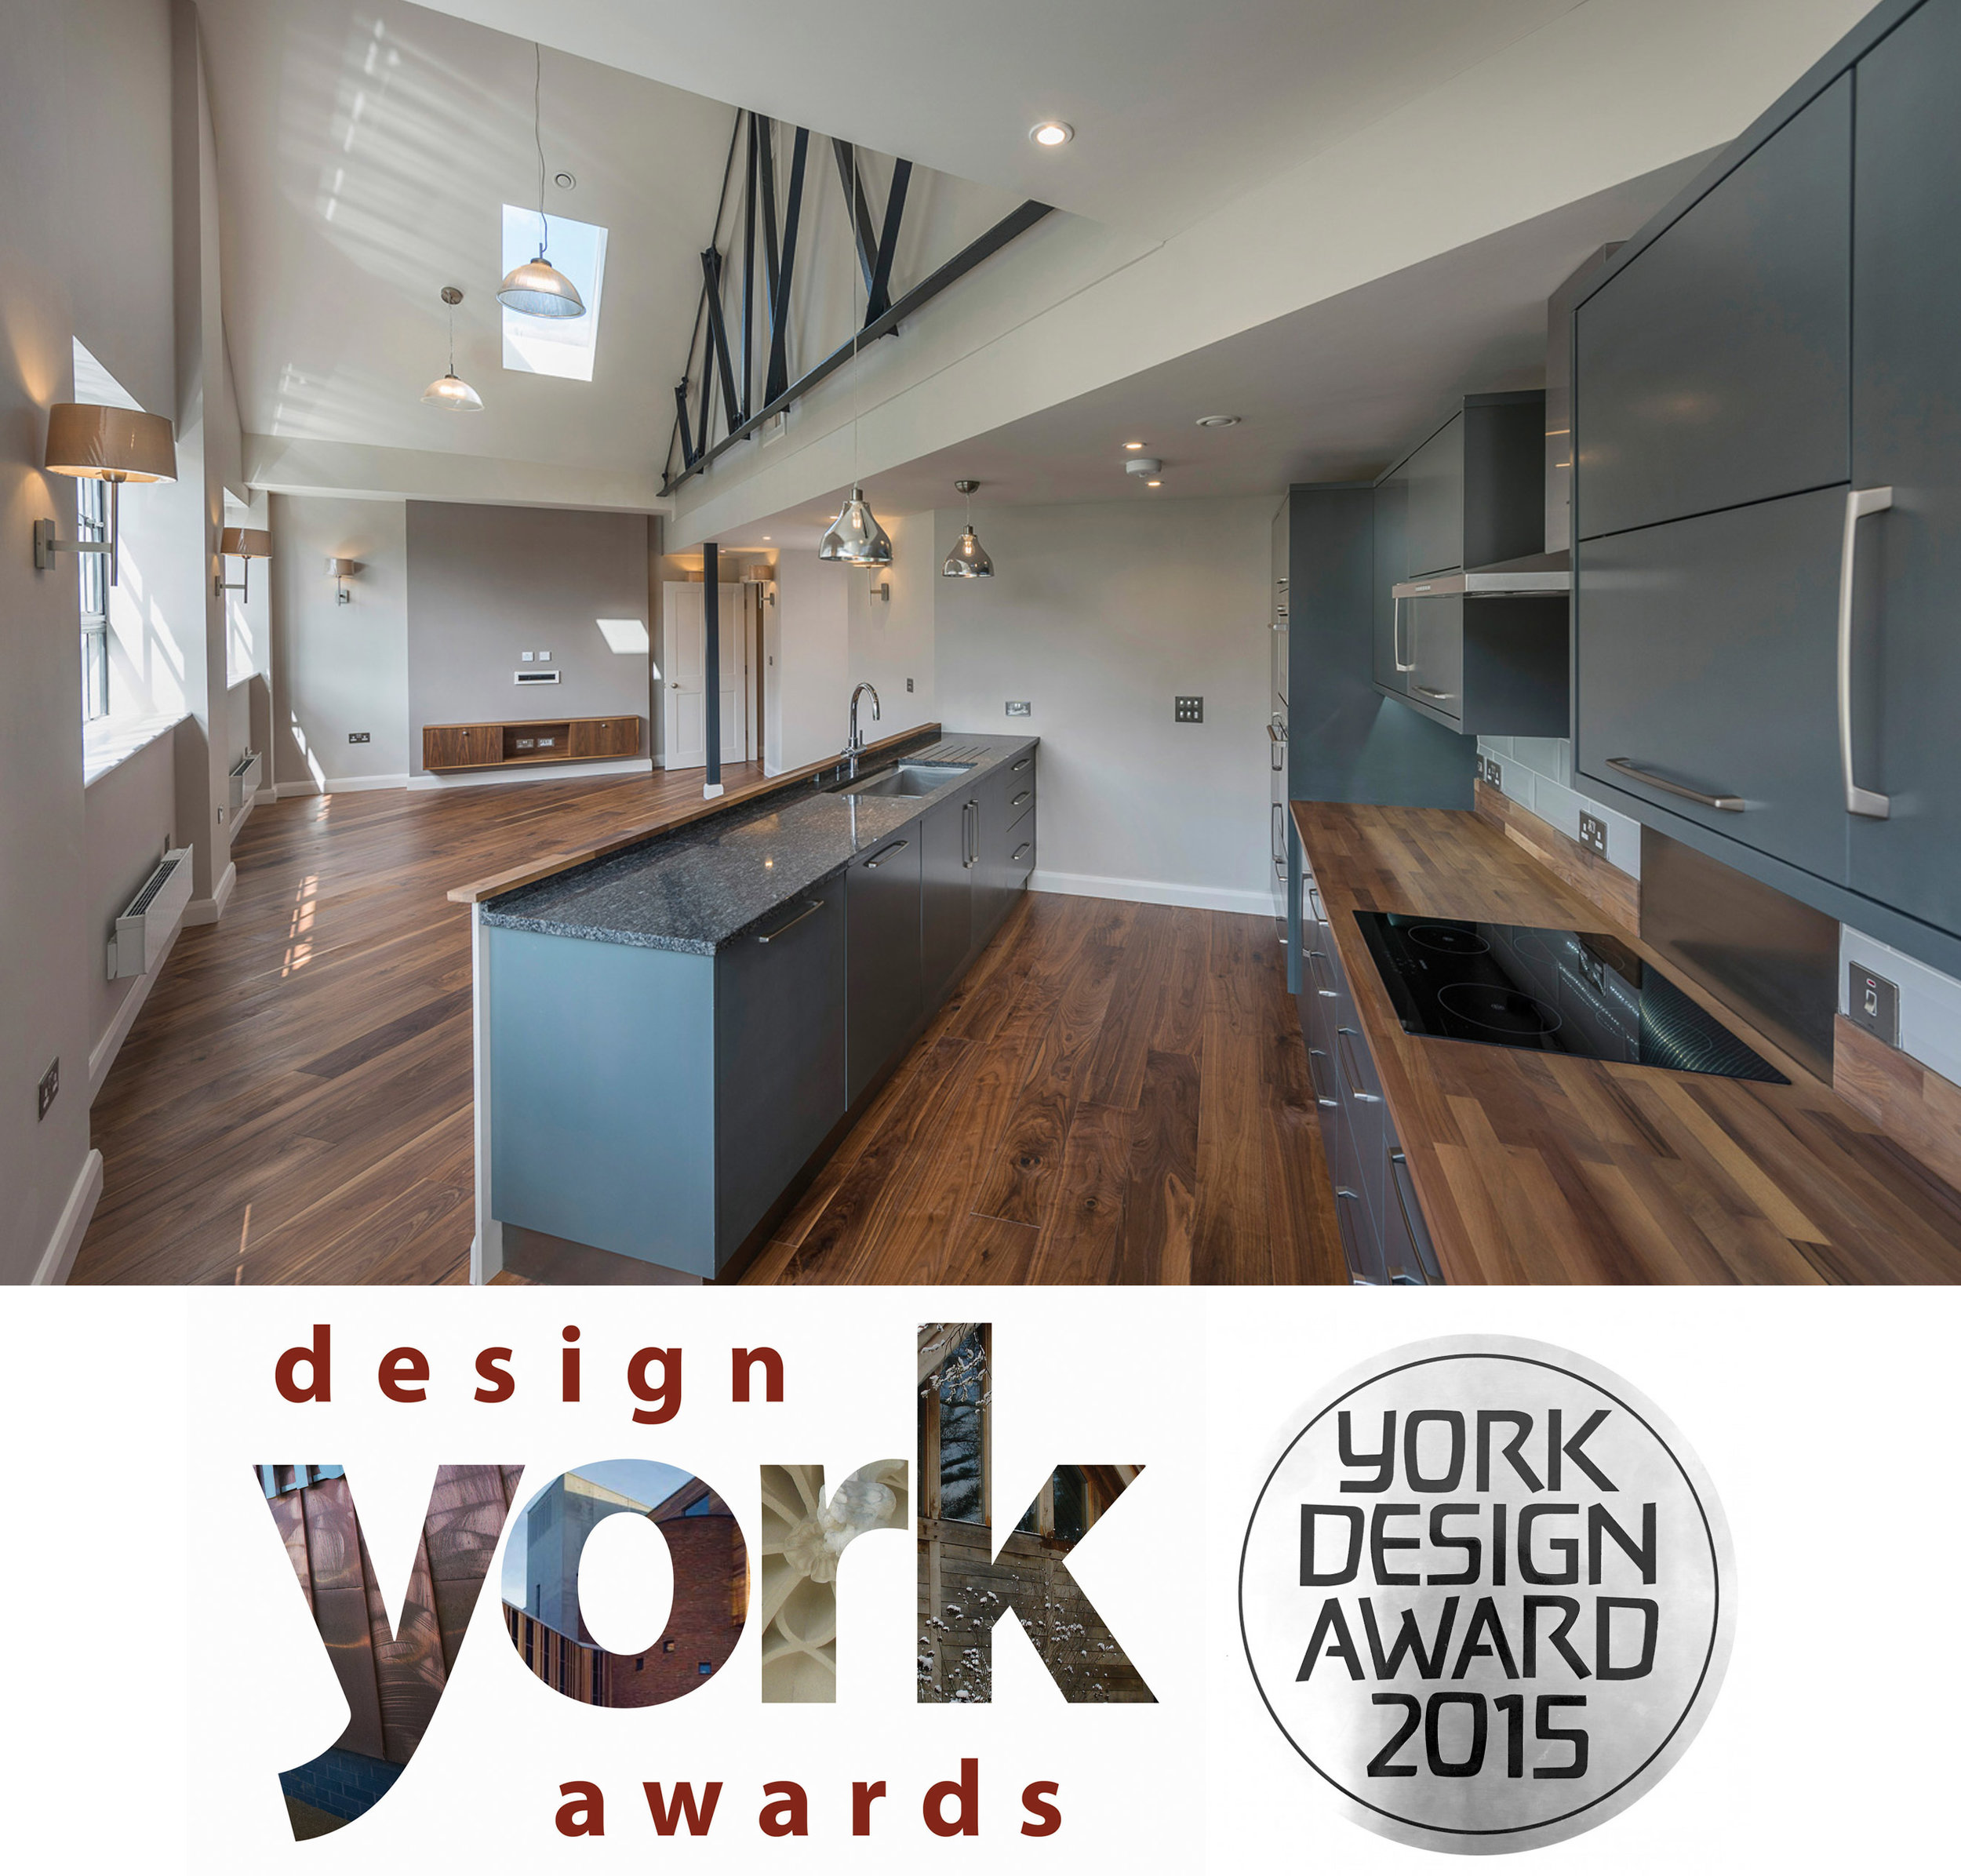 York-Design-Awards-2015-1.jpg